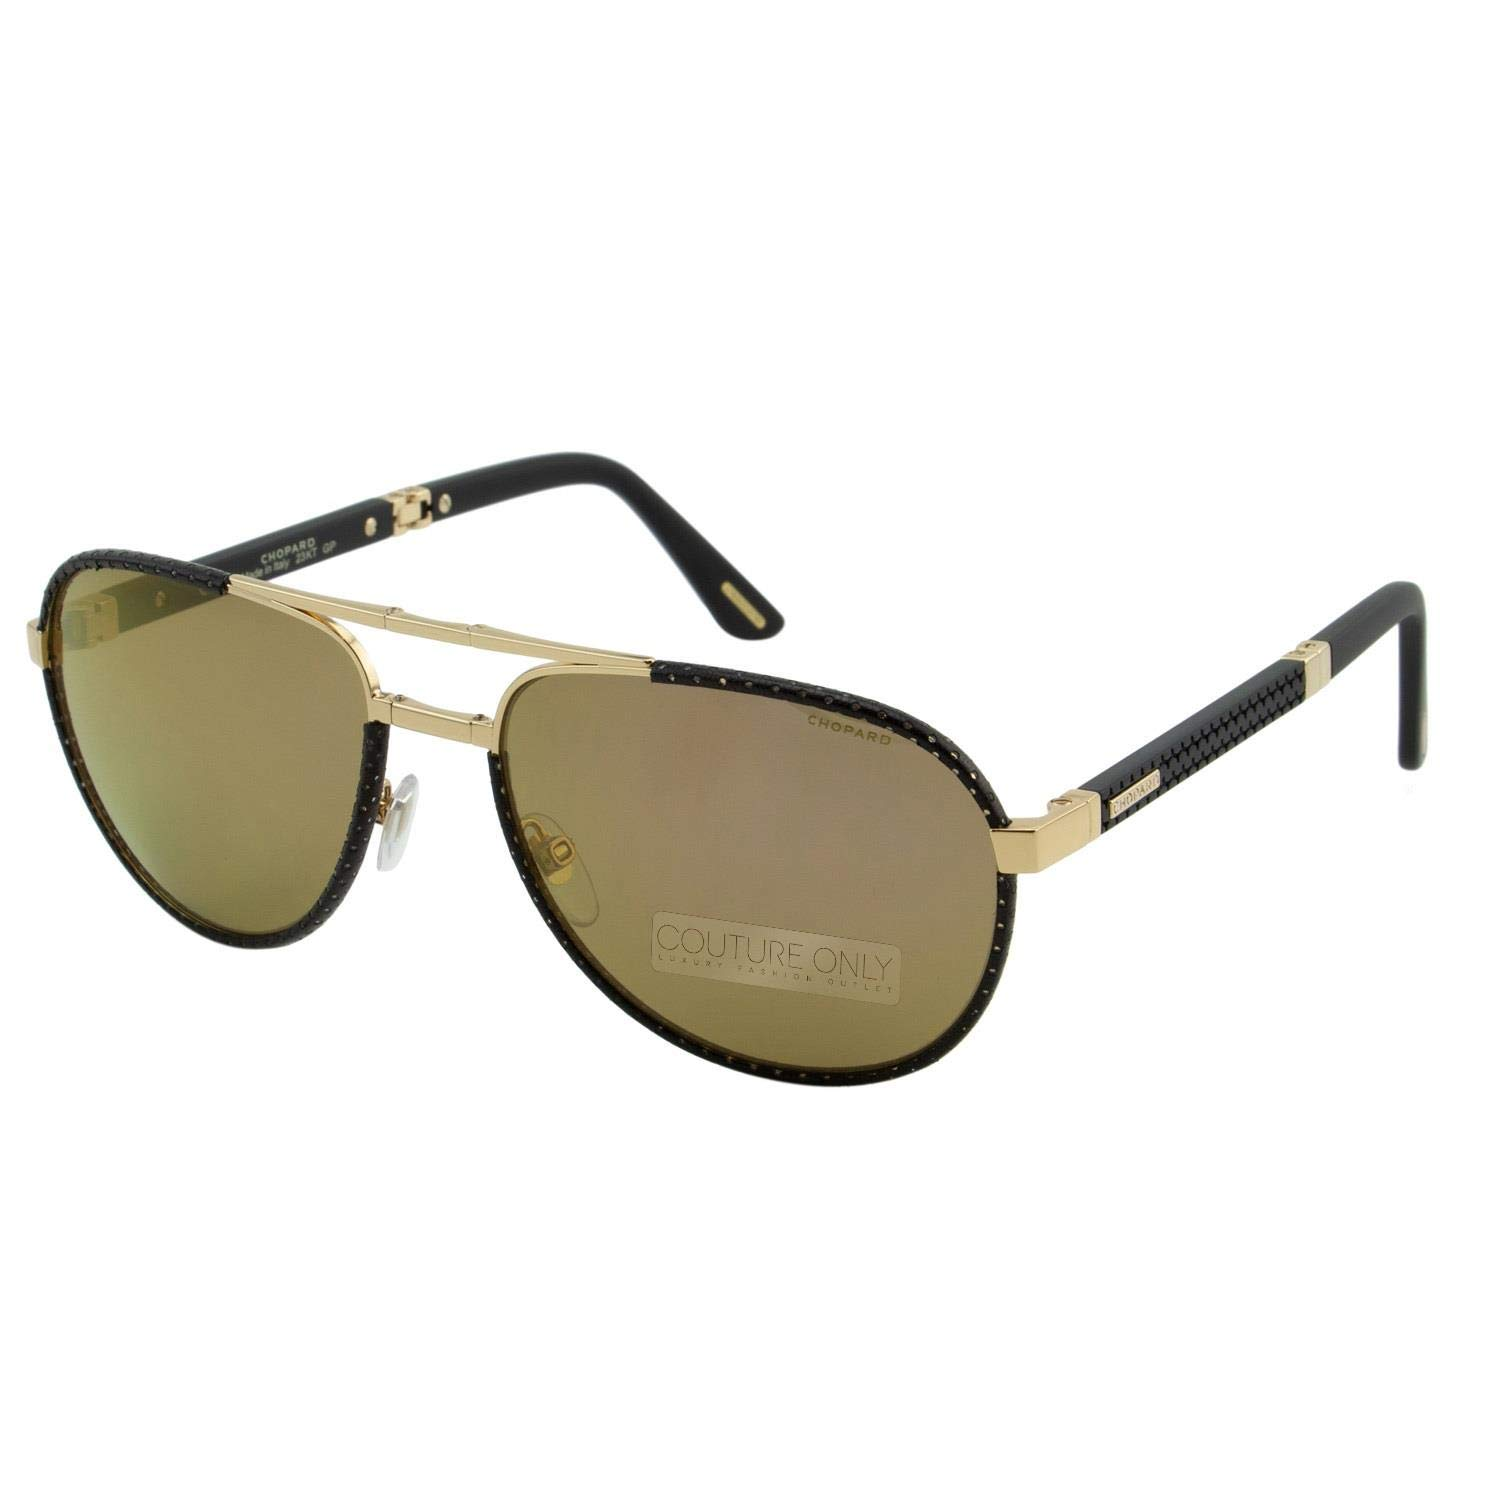 Chopard Mille Miglia LIMITED EDITION Superfast SCH B81V 300P Men Black & Gold Aviator Sunglasses Polarized